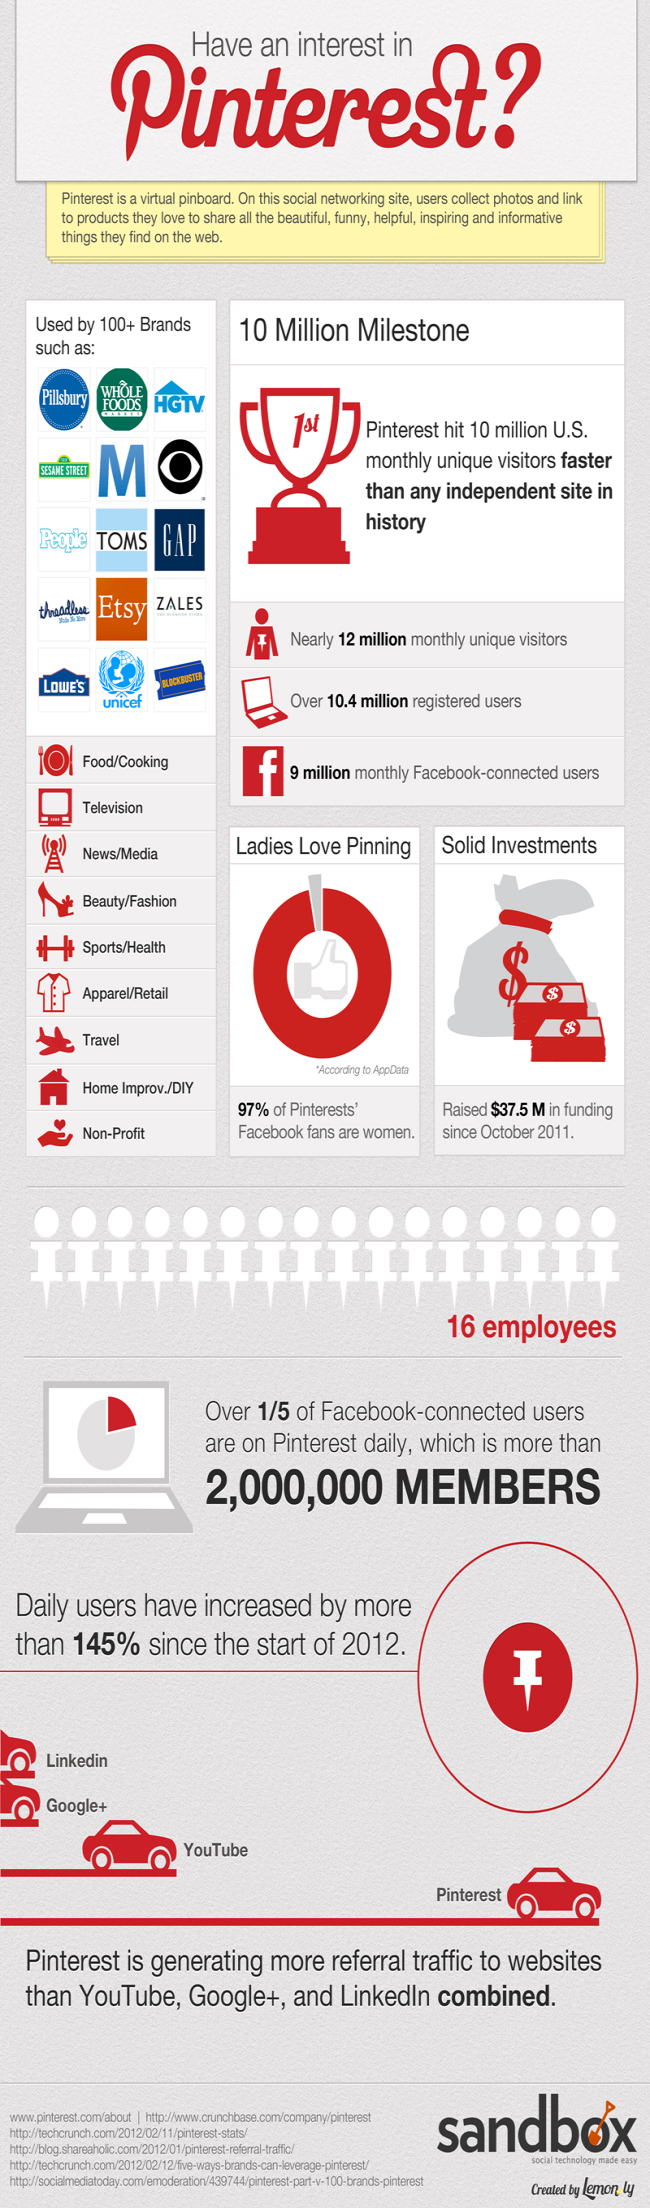 Pinterest info graphic